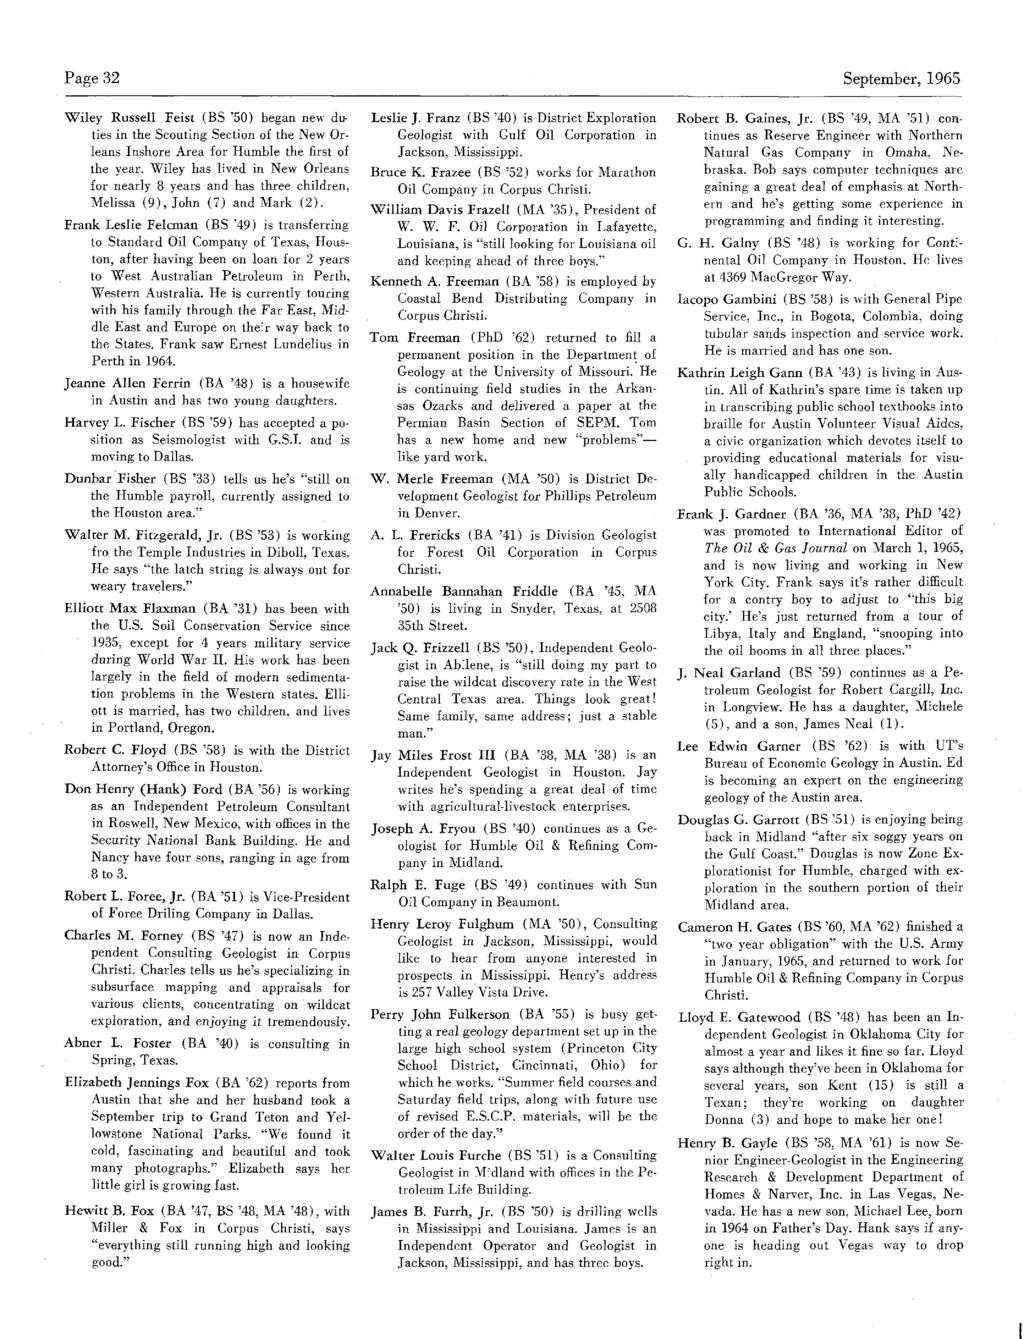 Page 82 September,1965 Wiley Russell Feist (BS '50) began new duties in the Scouting Section of the New Orleans Inshore Area for Humble the first of the year.